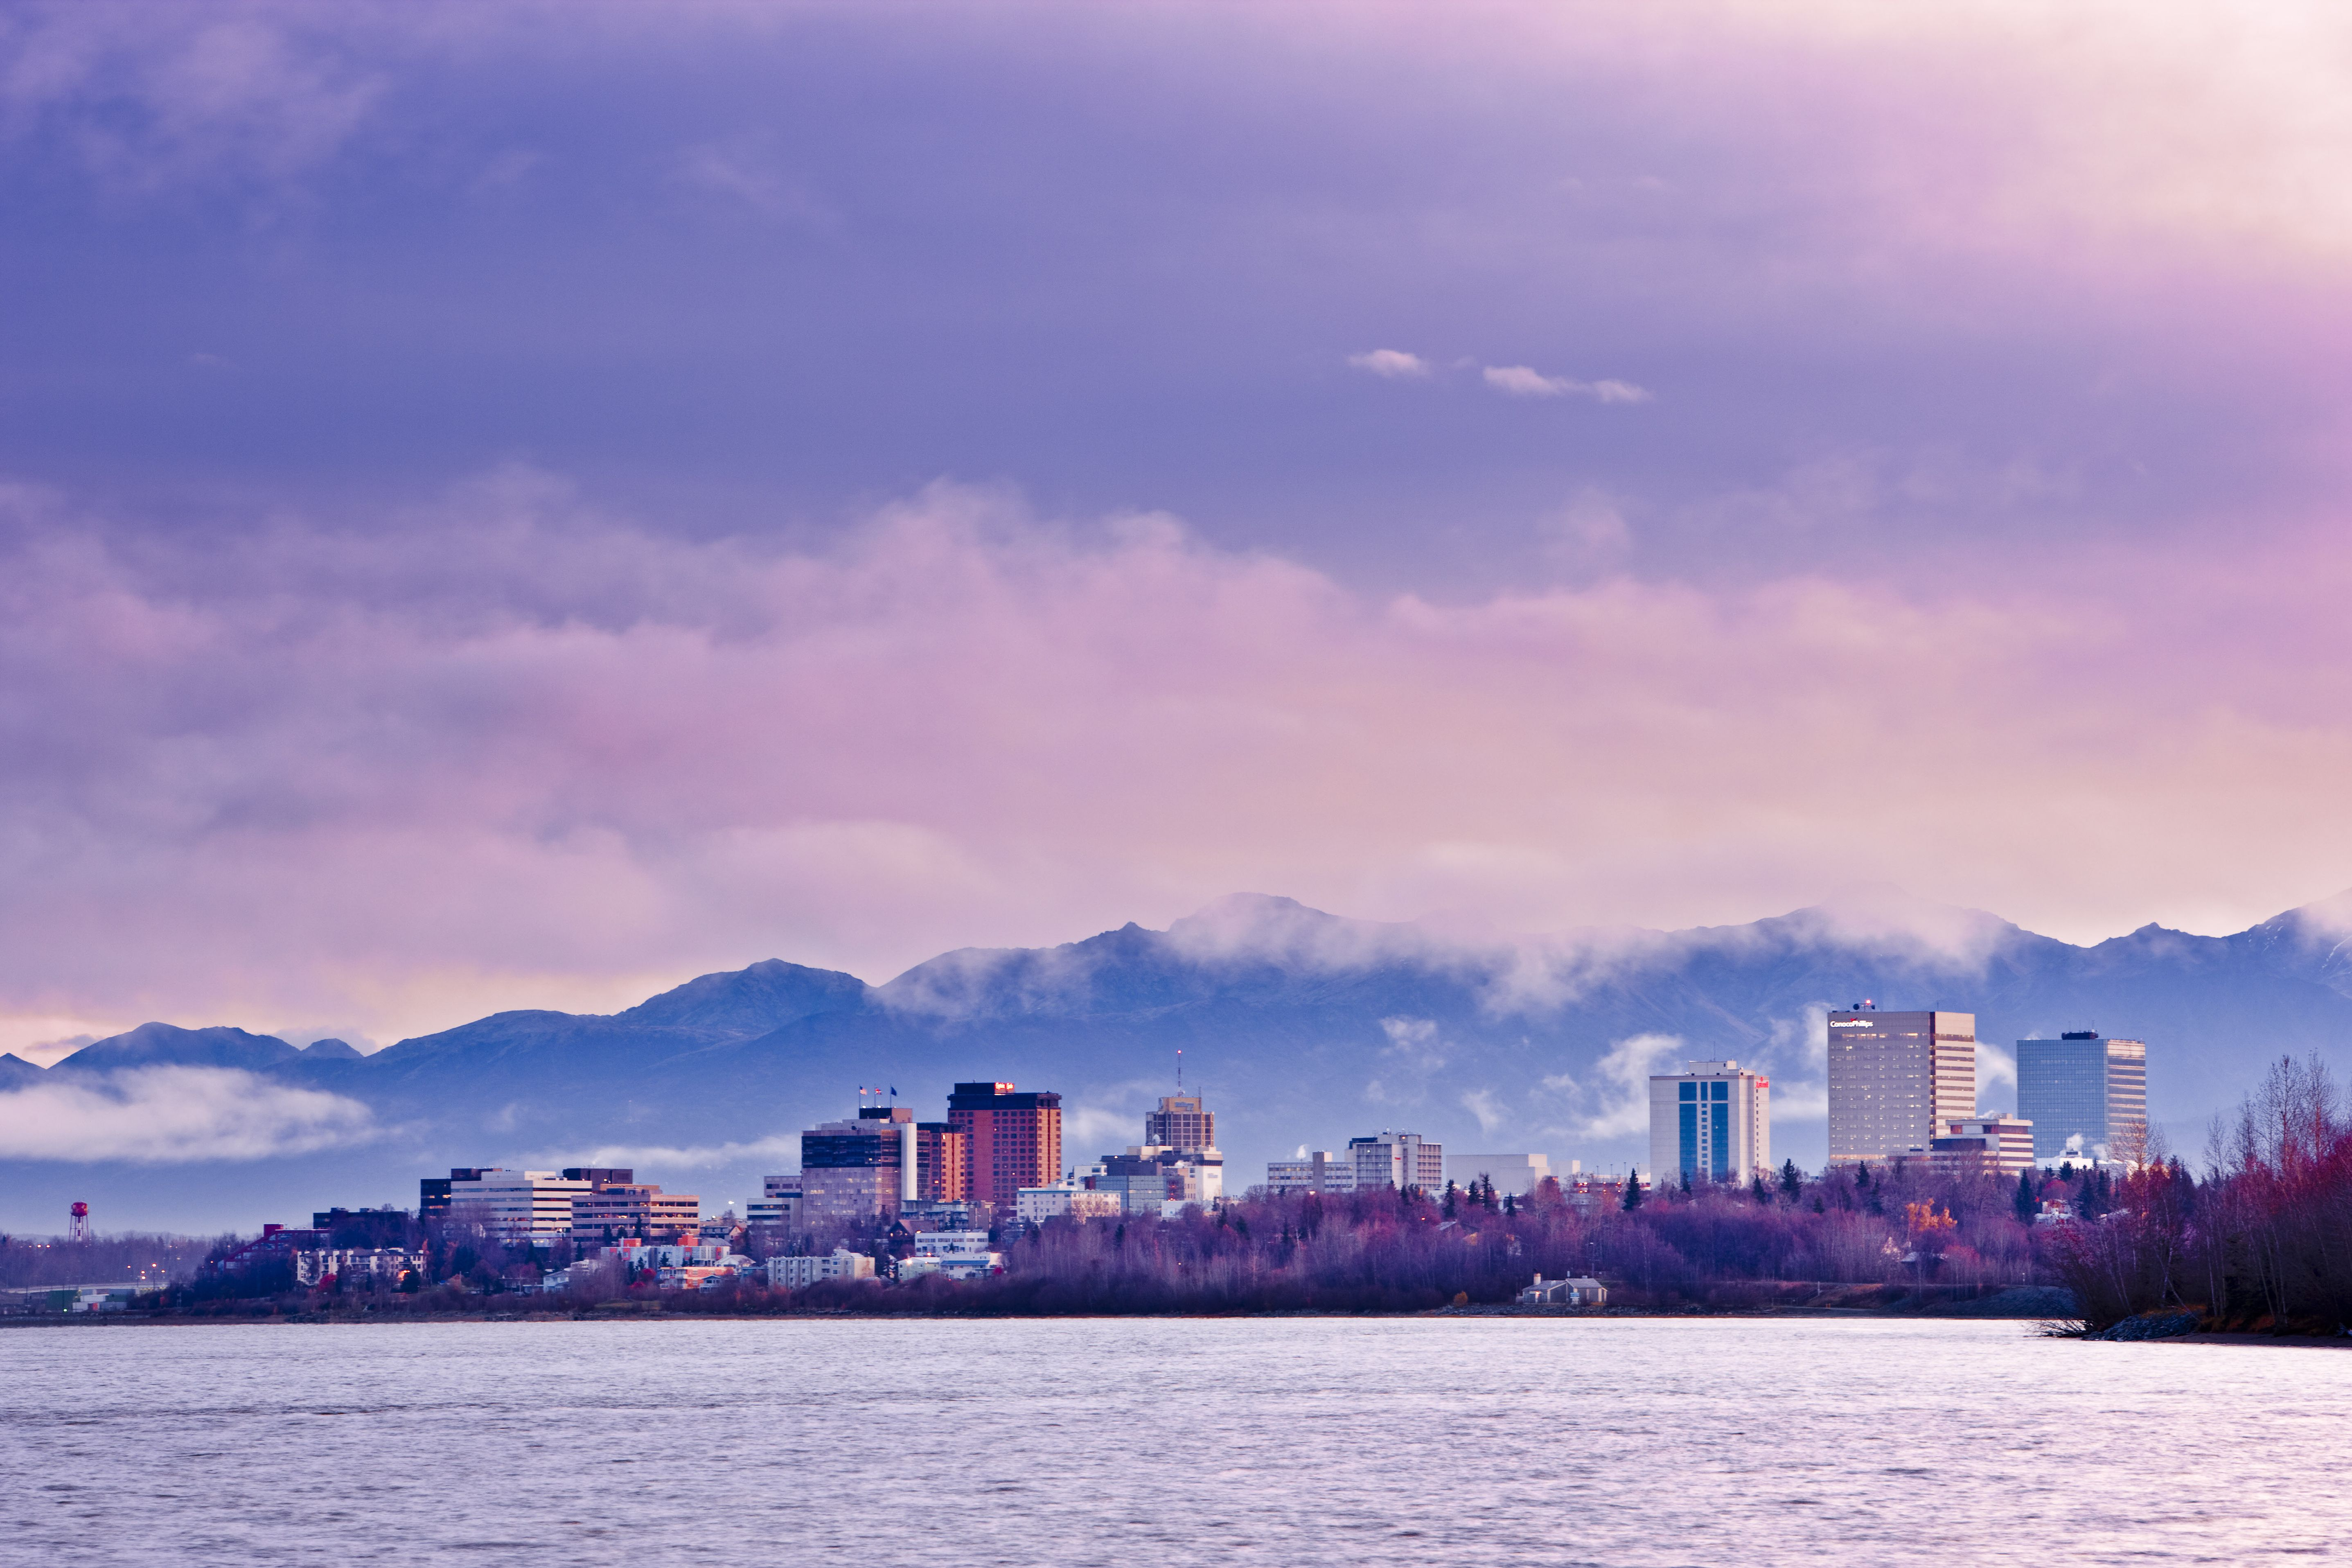 Anchorage skyline on the water beneath a wall of mountains.